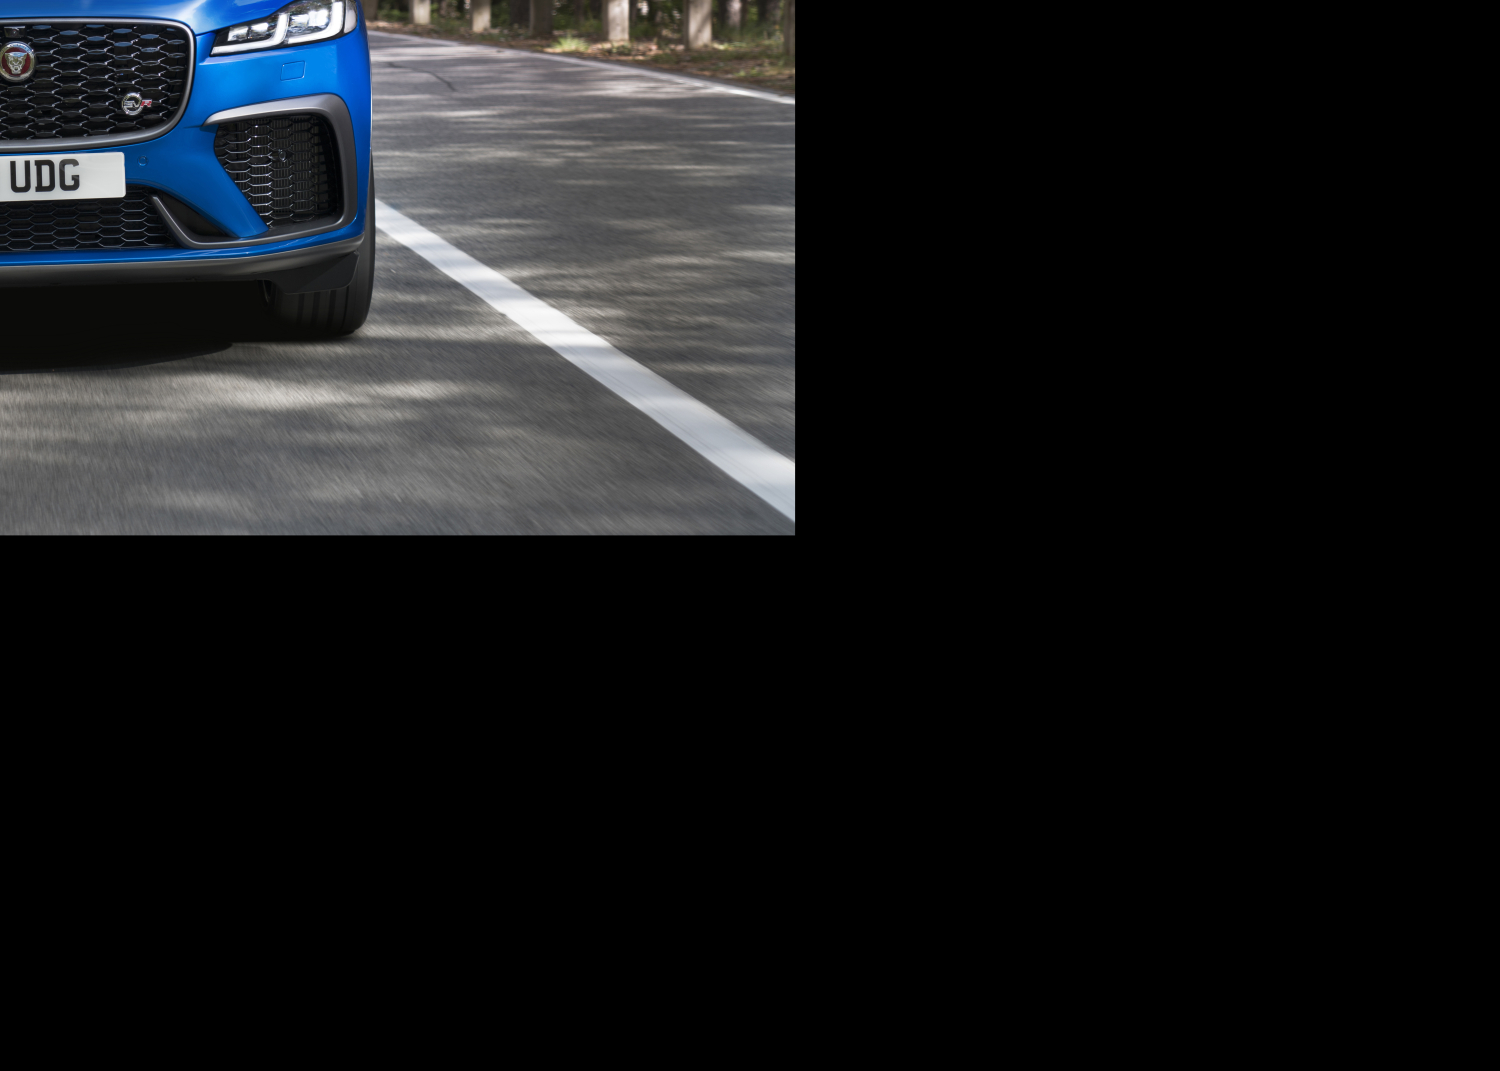 New Jaguar F-pace Svr: Performance Suv is Faster, more Luxurious and more Refined than Ever - Image 5